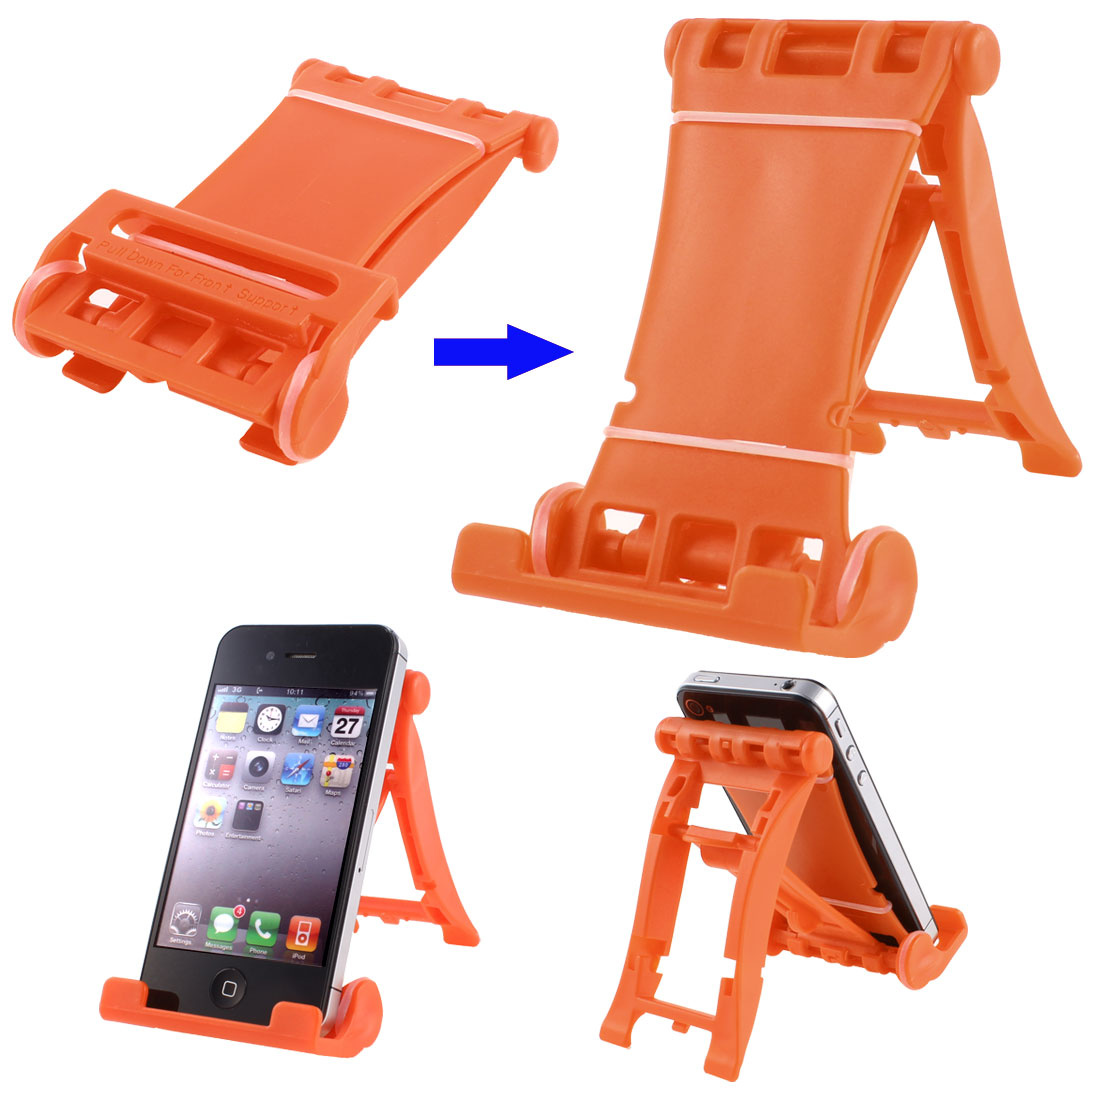 Orange Plastic Folded Universal Portable Multi Stand Holder for E-Reader Tablets